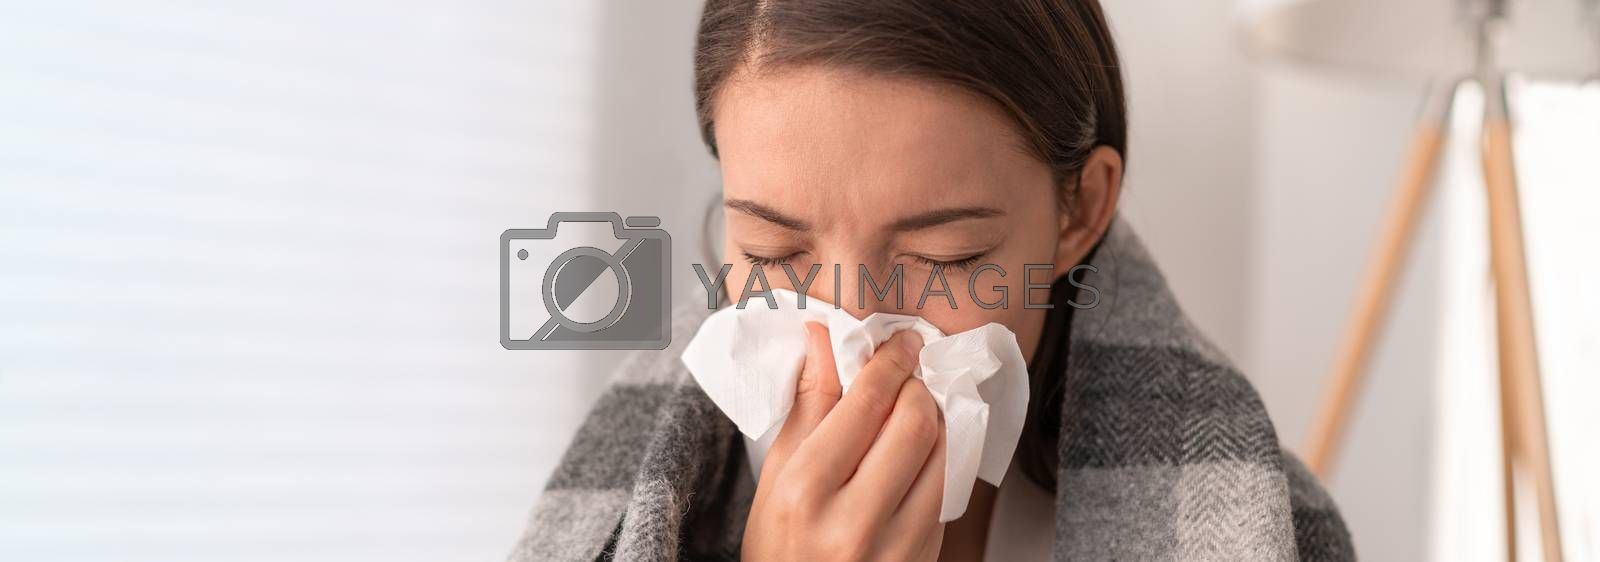 Sick woman feeling unwell staying home. Young girl with flu symptoms coughing in tissue covering nose when sneezing as COVID 19 prevention. Panoramic crop.